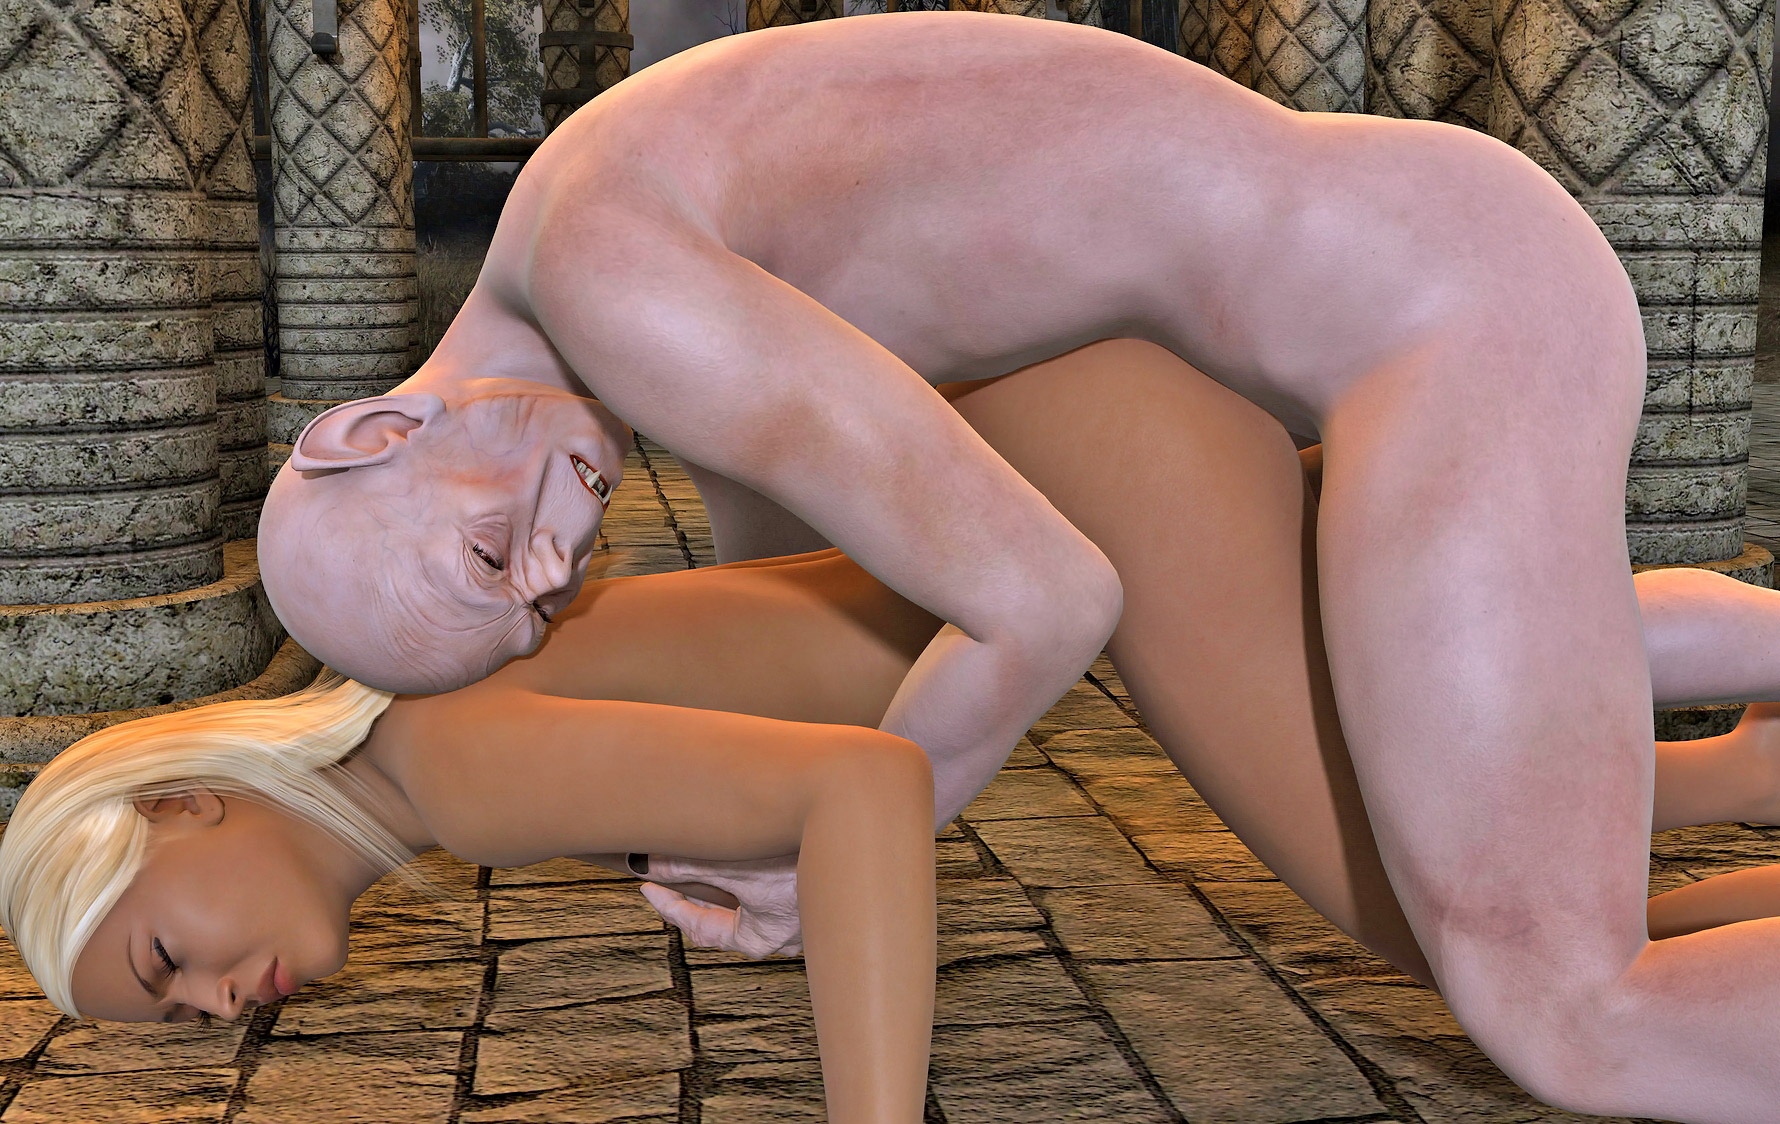 Free streaming 3d monster fucks adult galleries